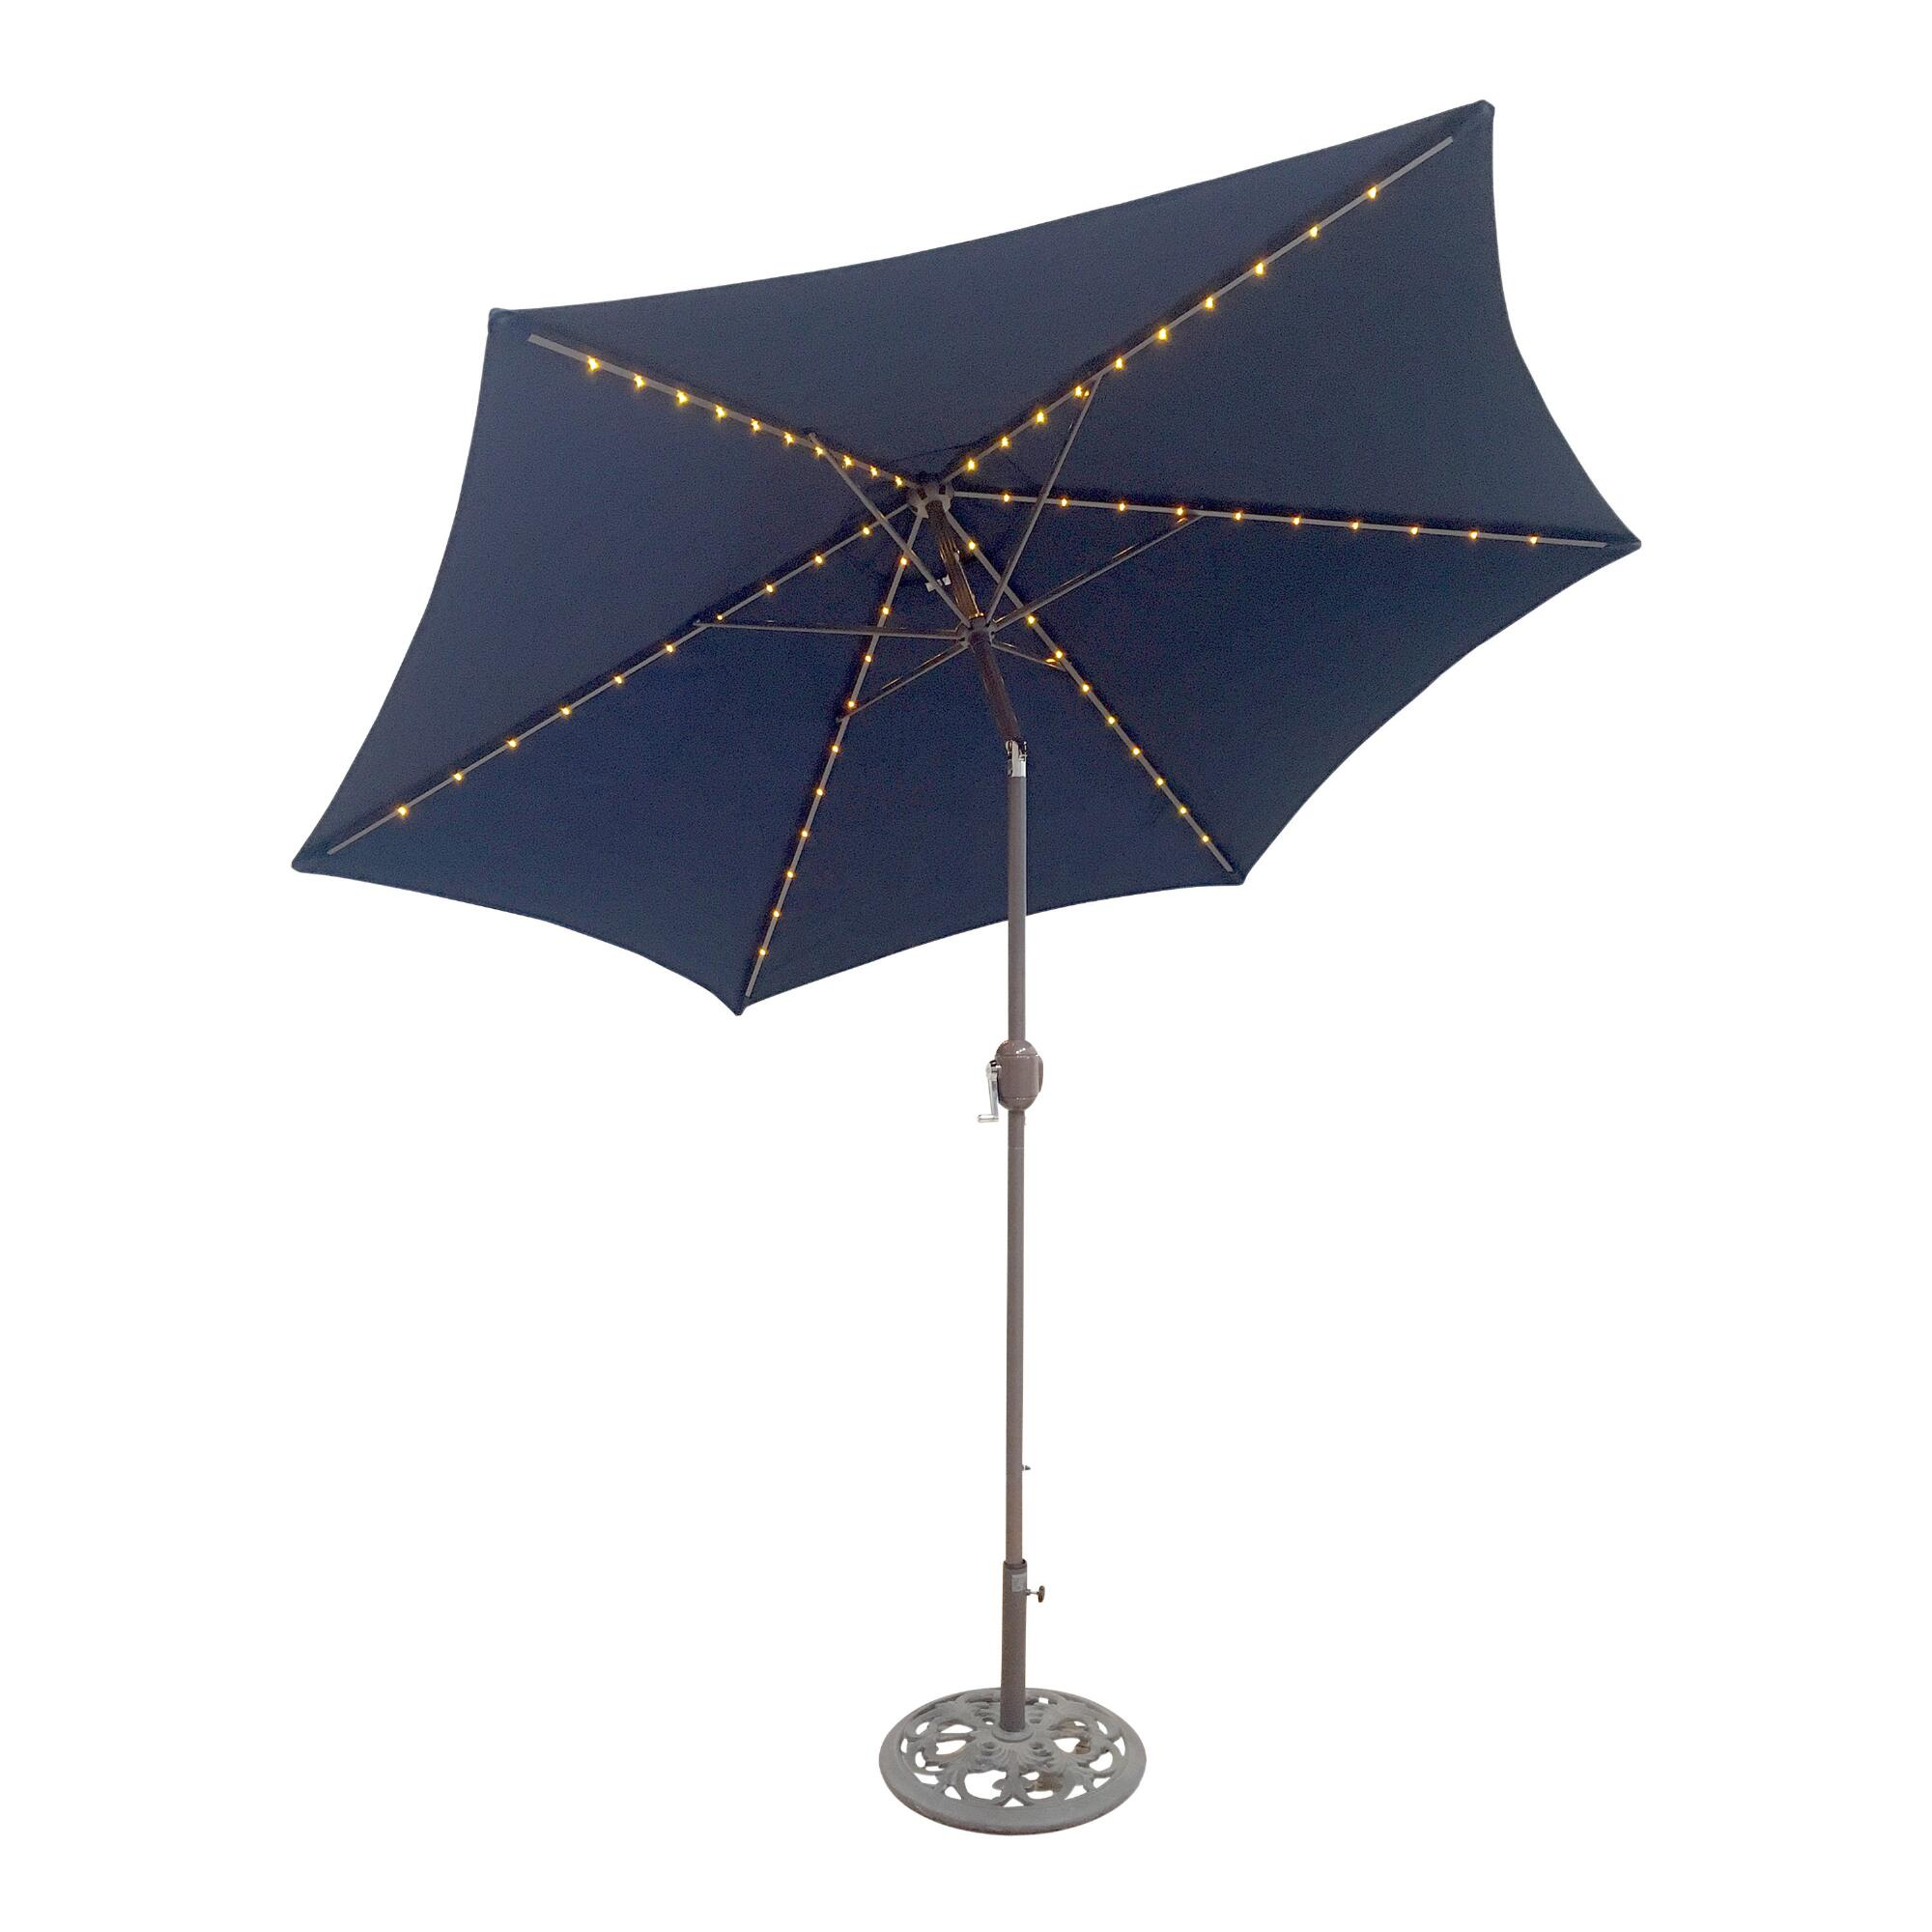 Navy 9-ft. Round Umbrella With Lights